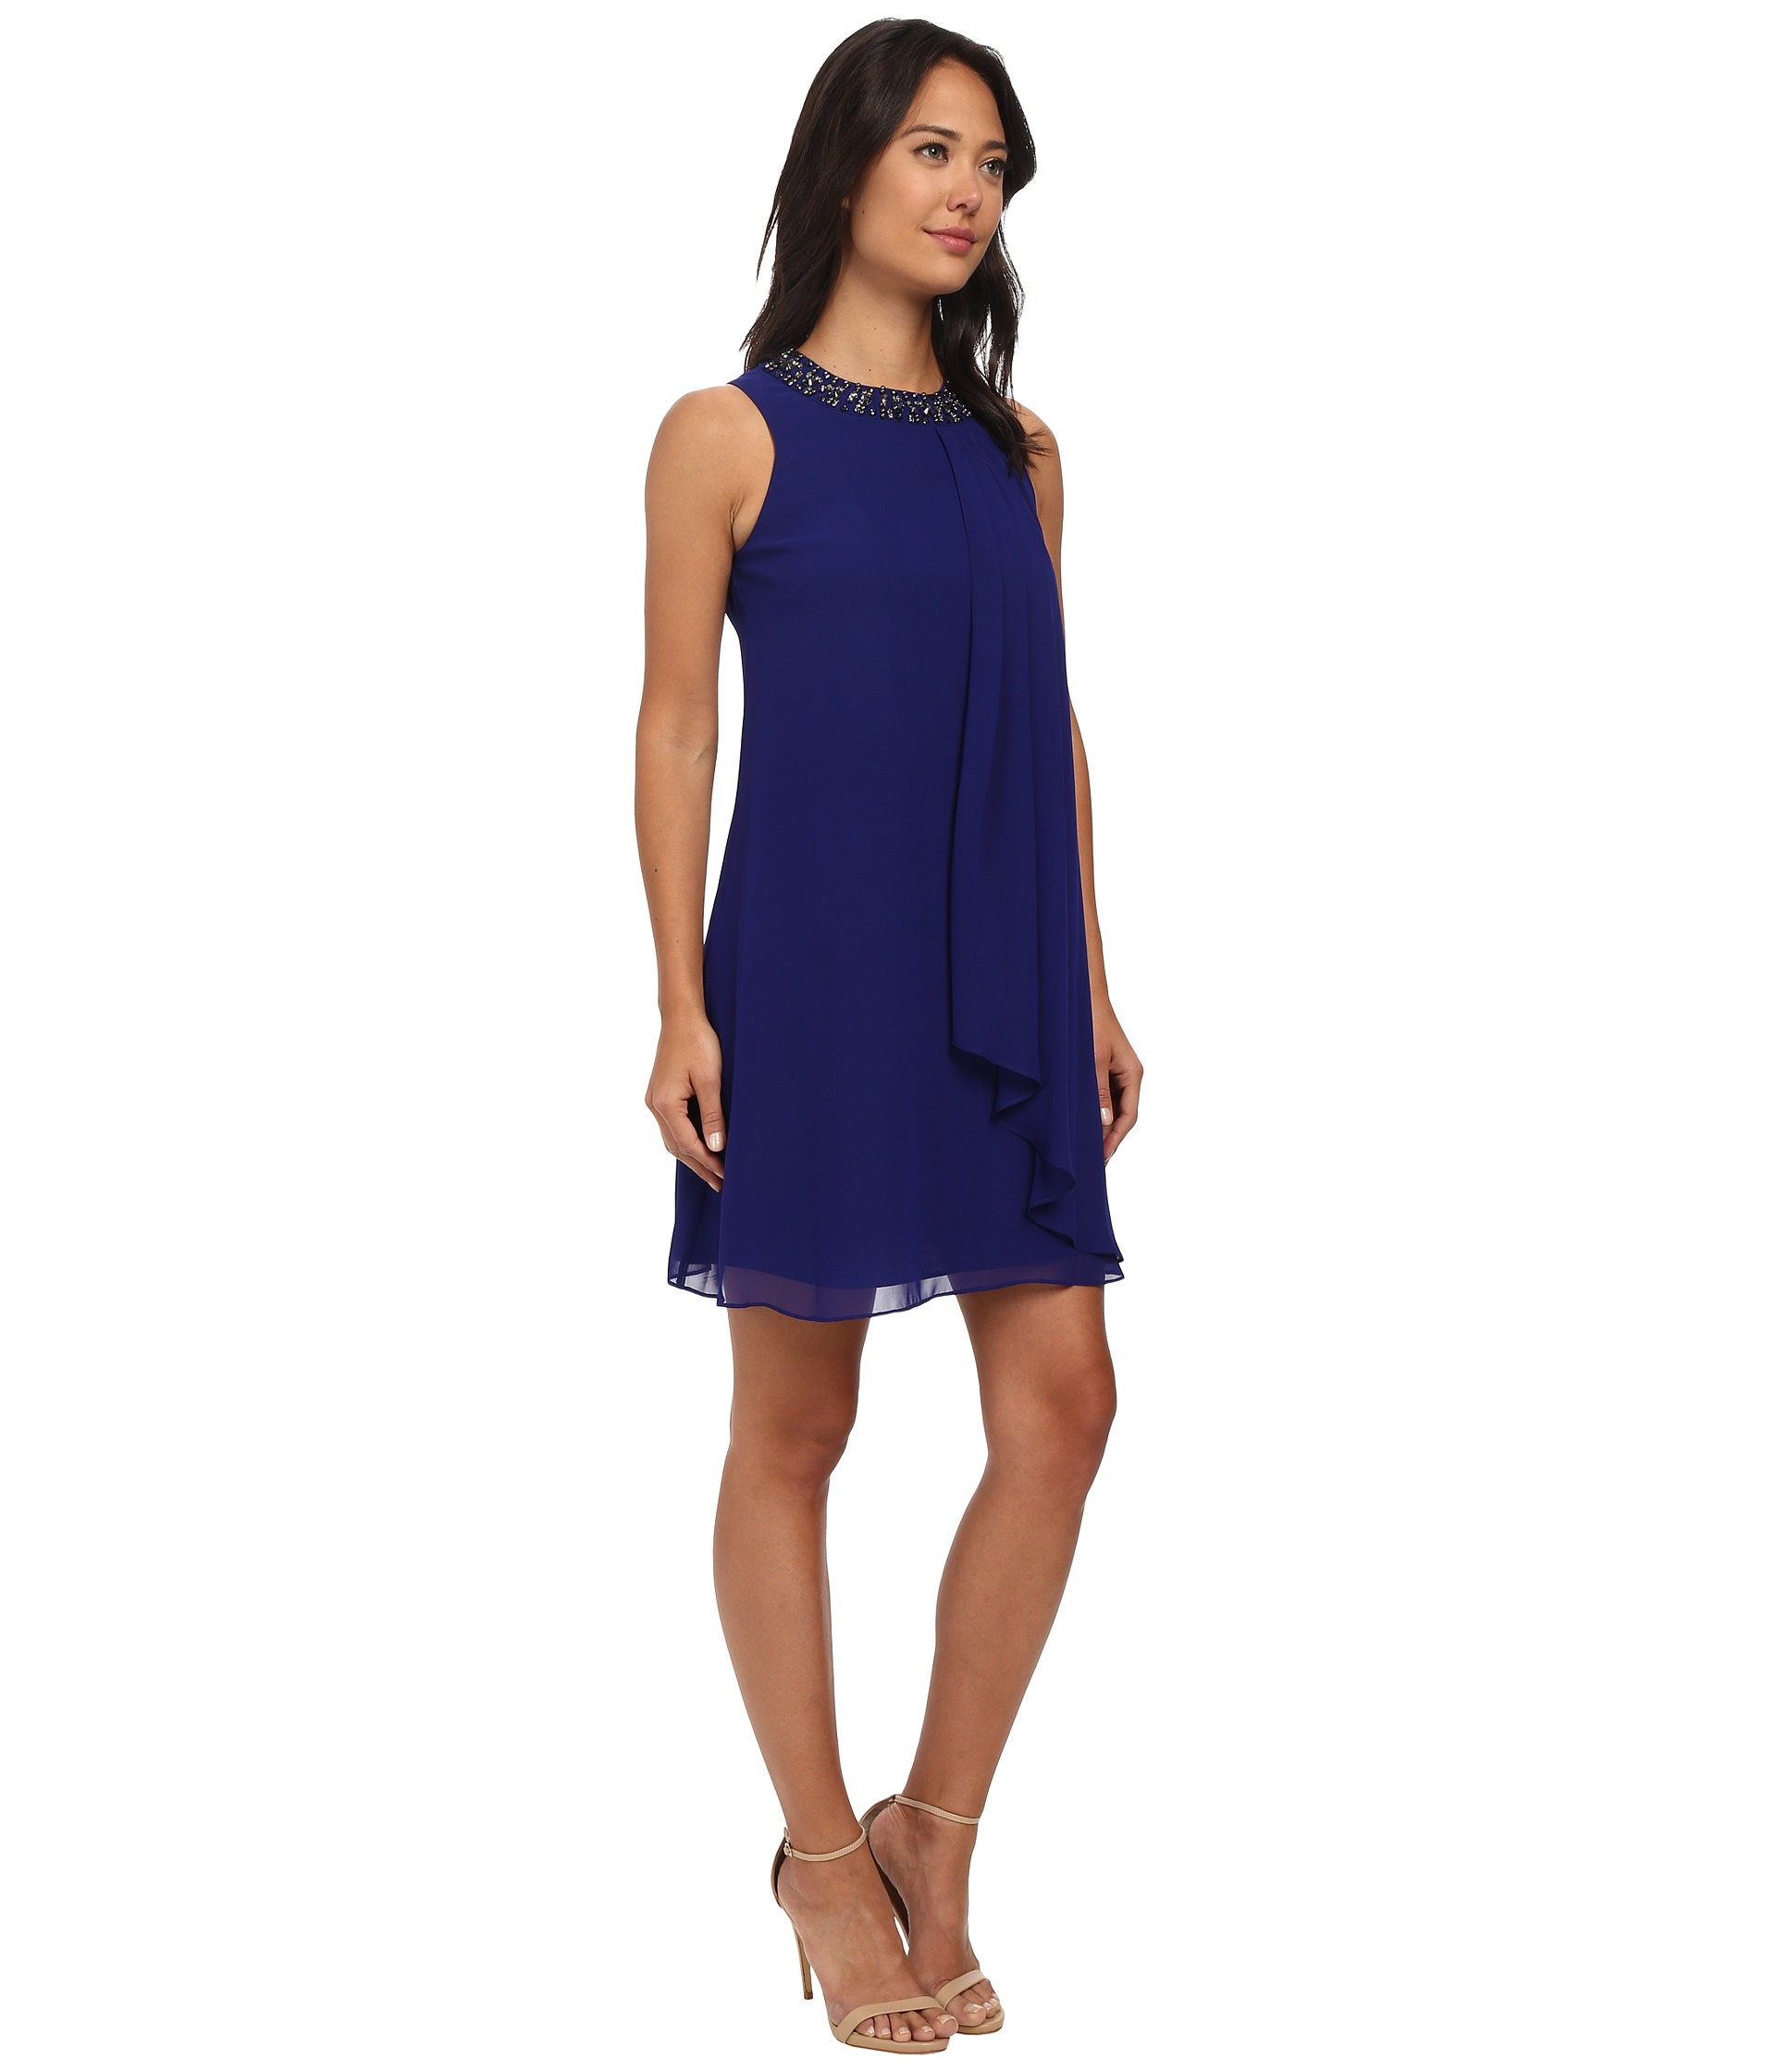 dc33a438bc355 Lyst - Vince Camuto Beaded Neck Sleeveless Chiffon Trapeze Dress in Blue